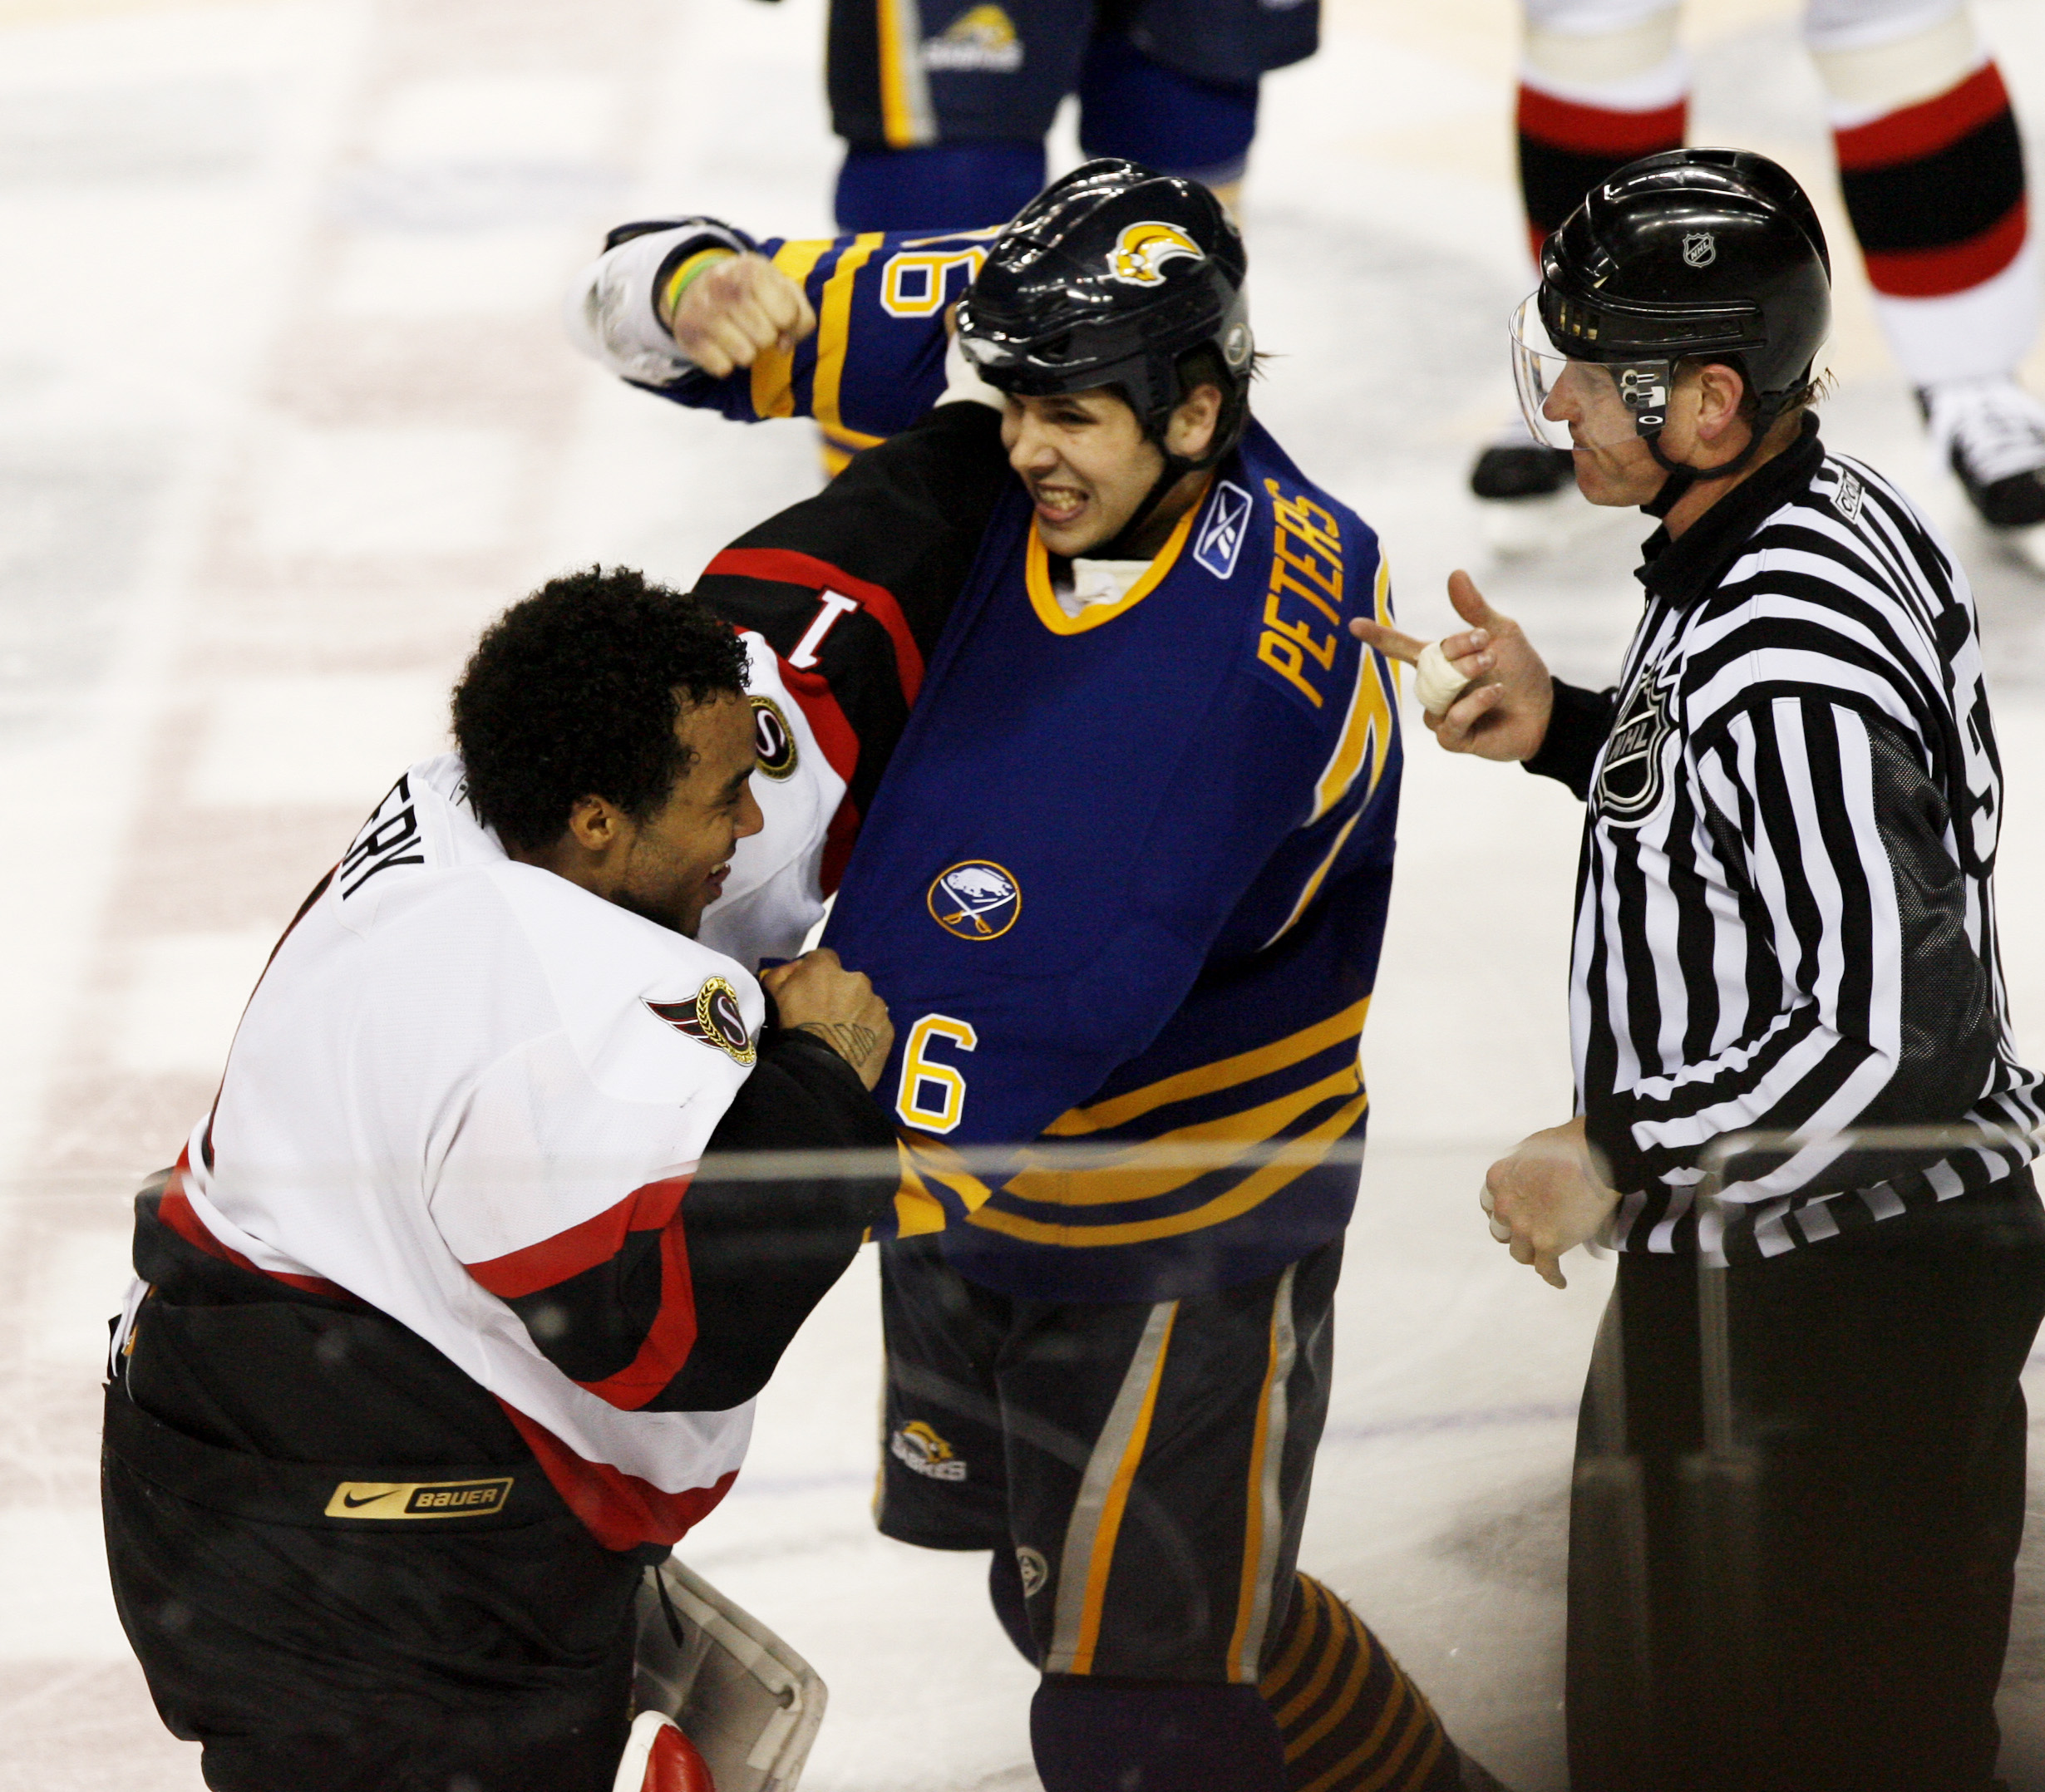 A decade ago, the rivalry between Buffalo and Ottawa exploded. The mayhem included the Sabres' Andrew Peters fighting goalie Ray Emery. (James P. McCoy/Buffalo News)